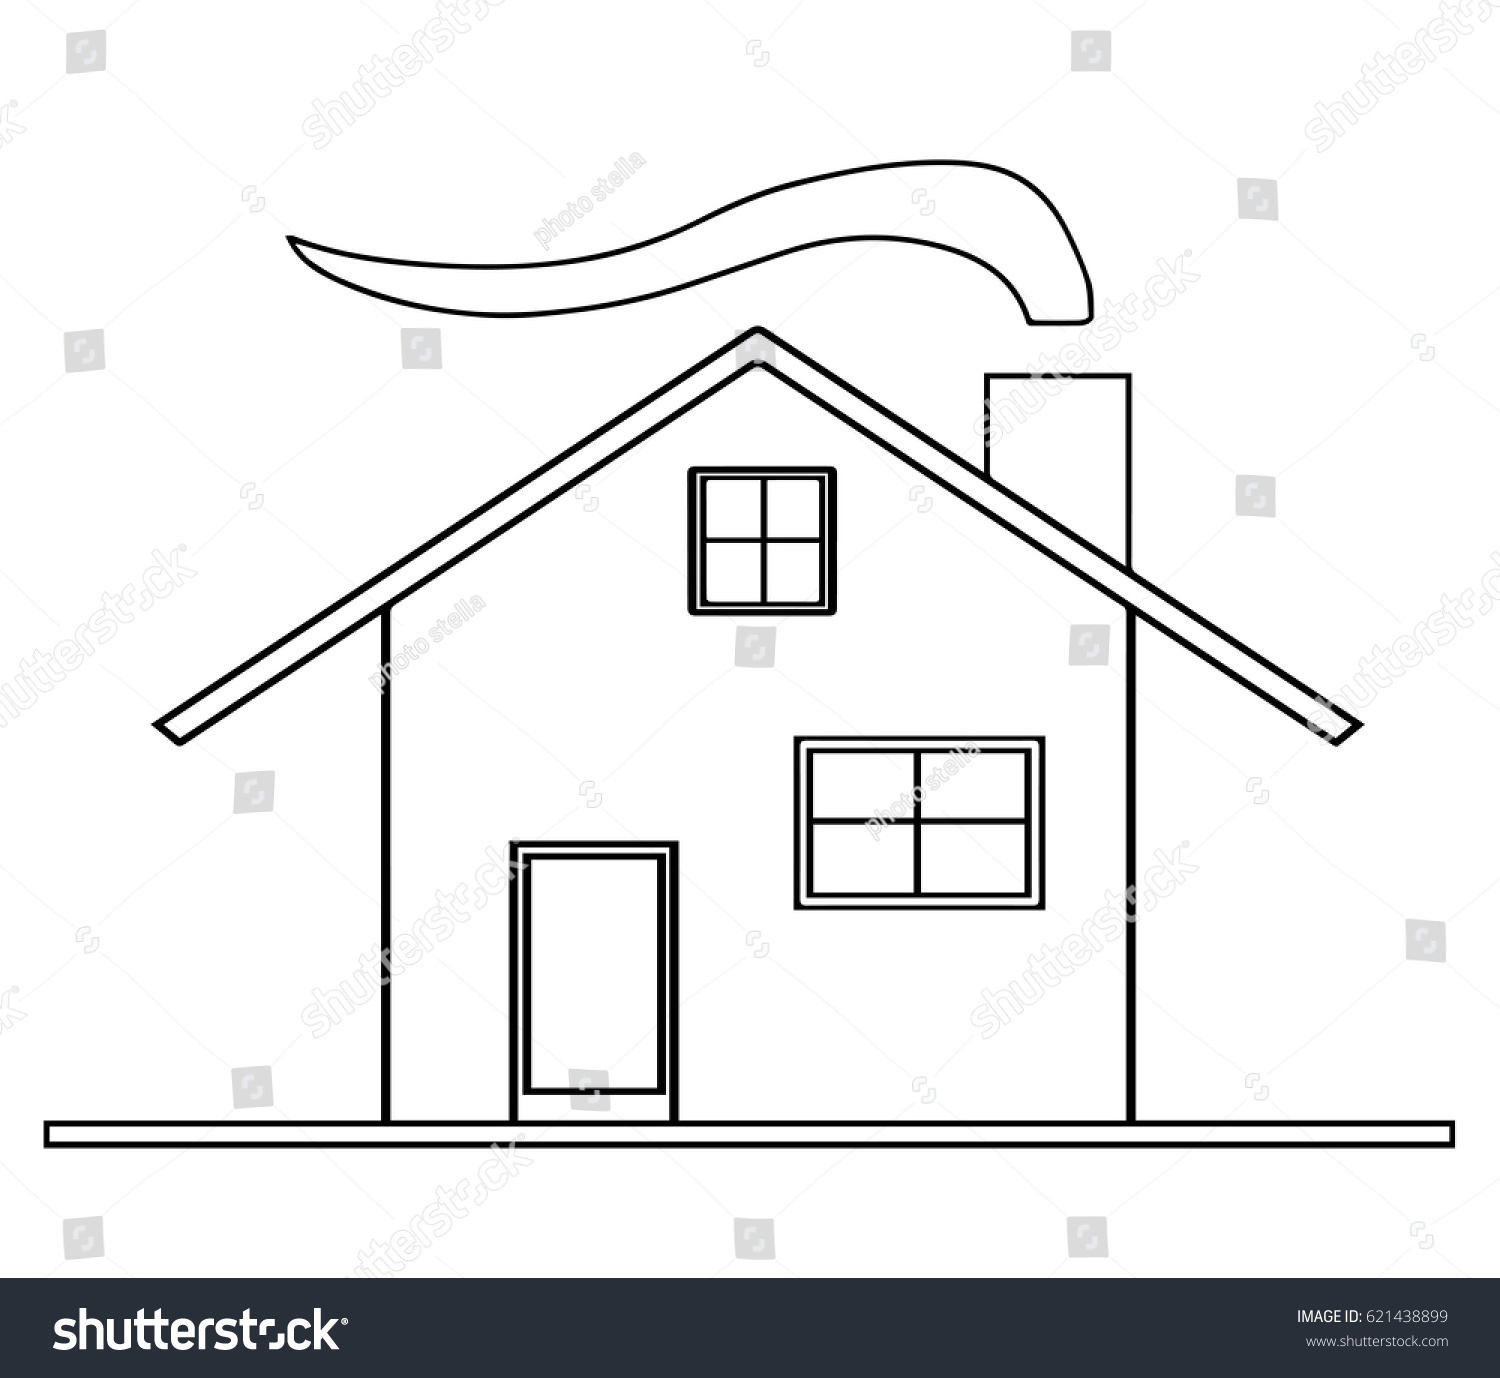 hight resolution of house sketch vector with chimney and smoke from fireplace